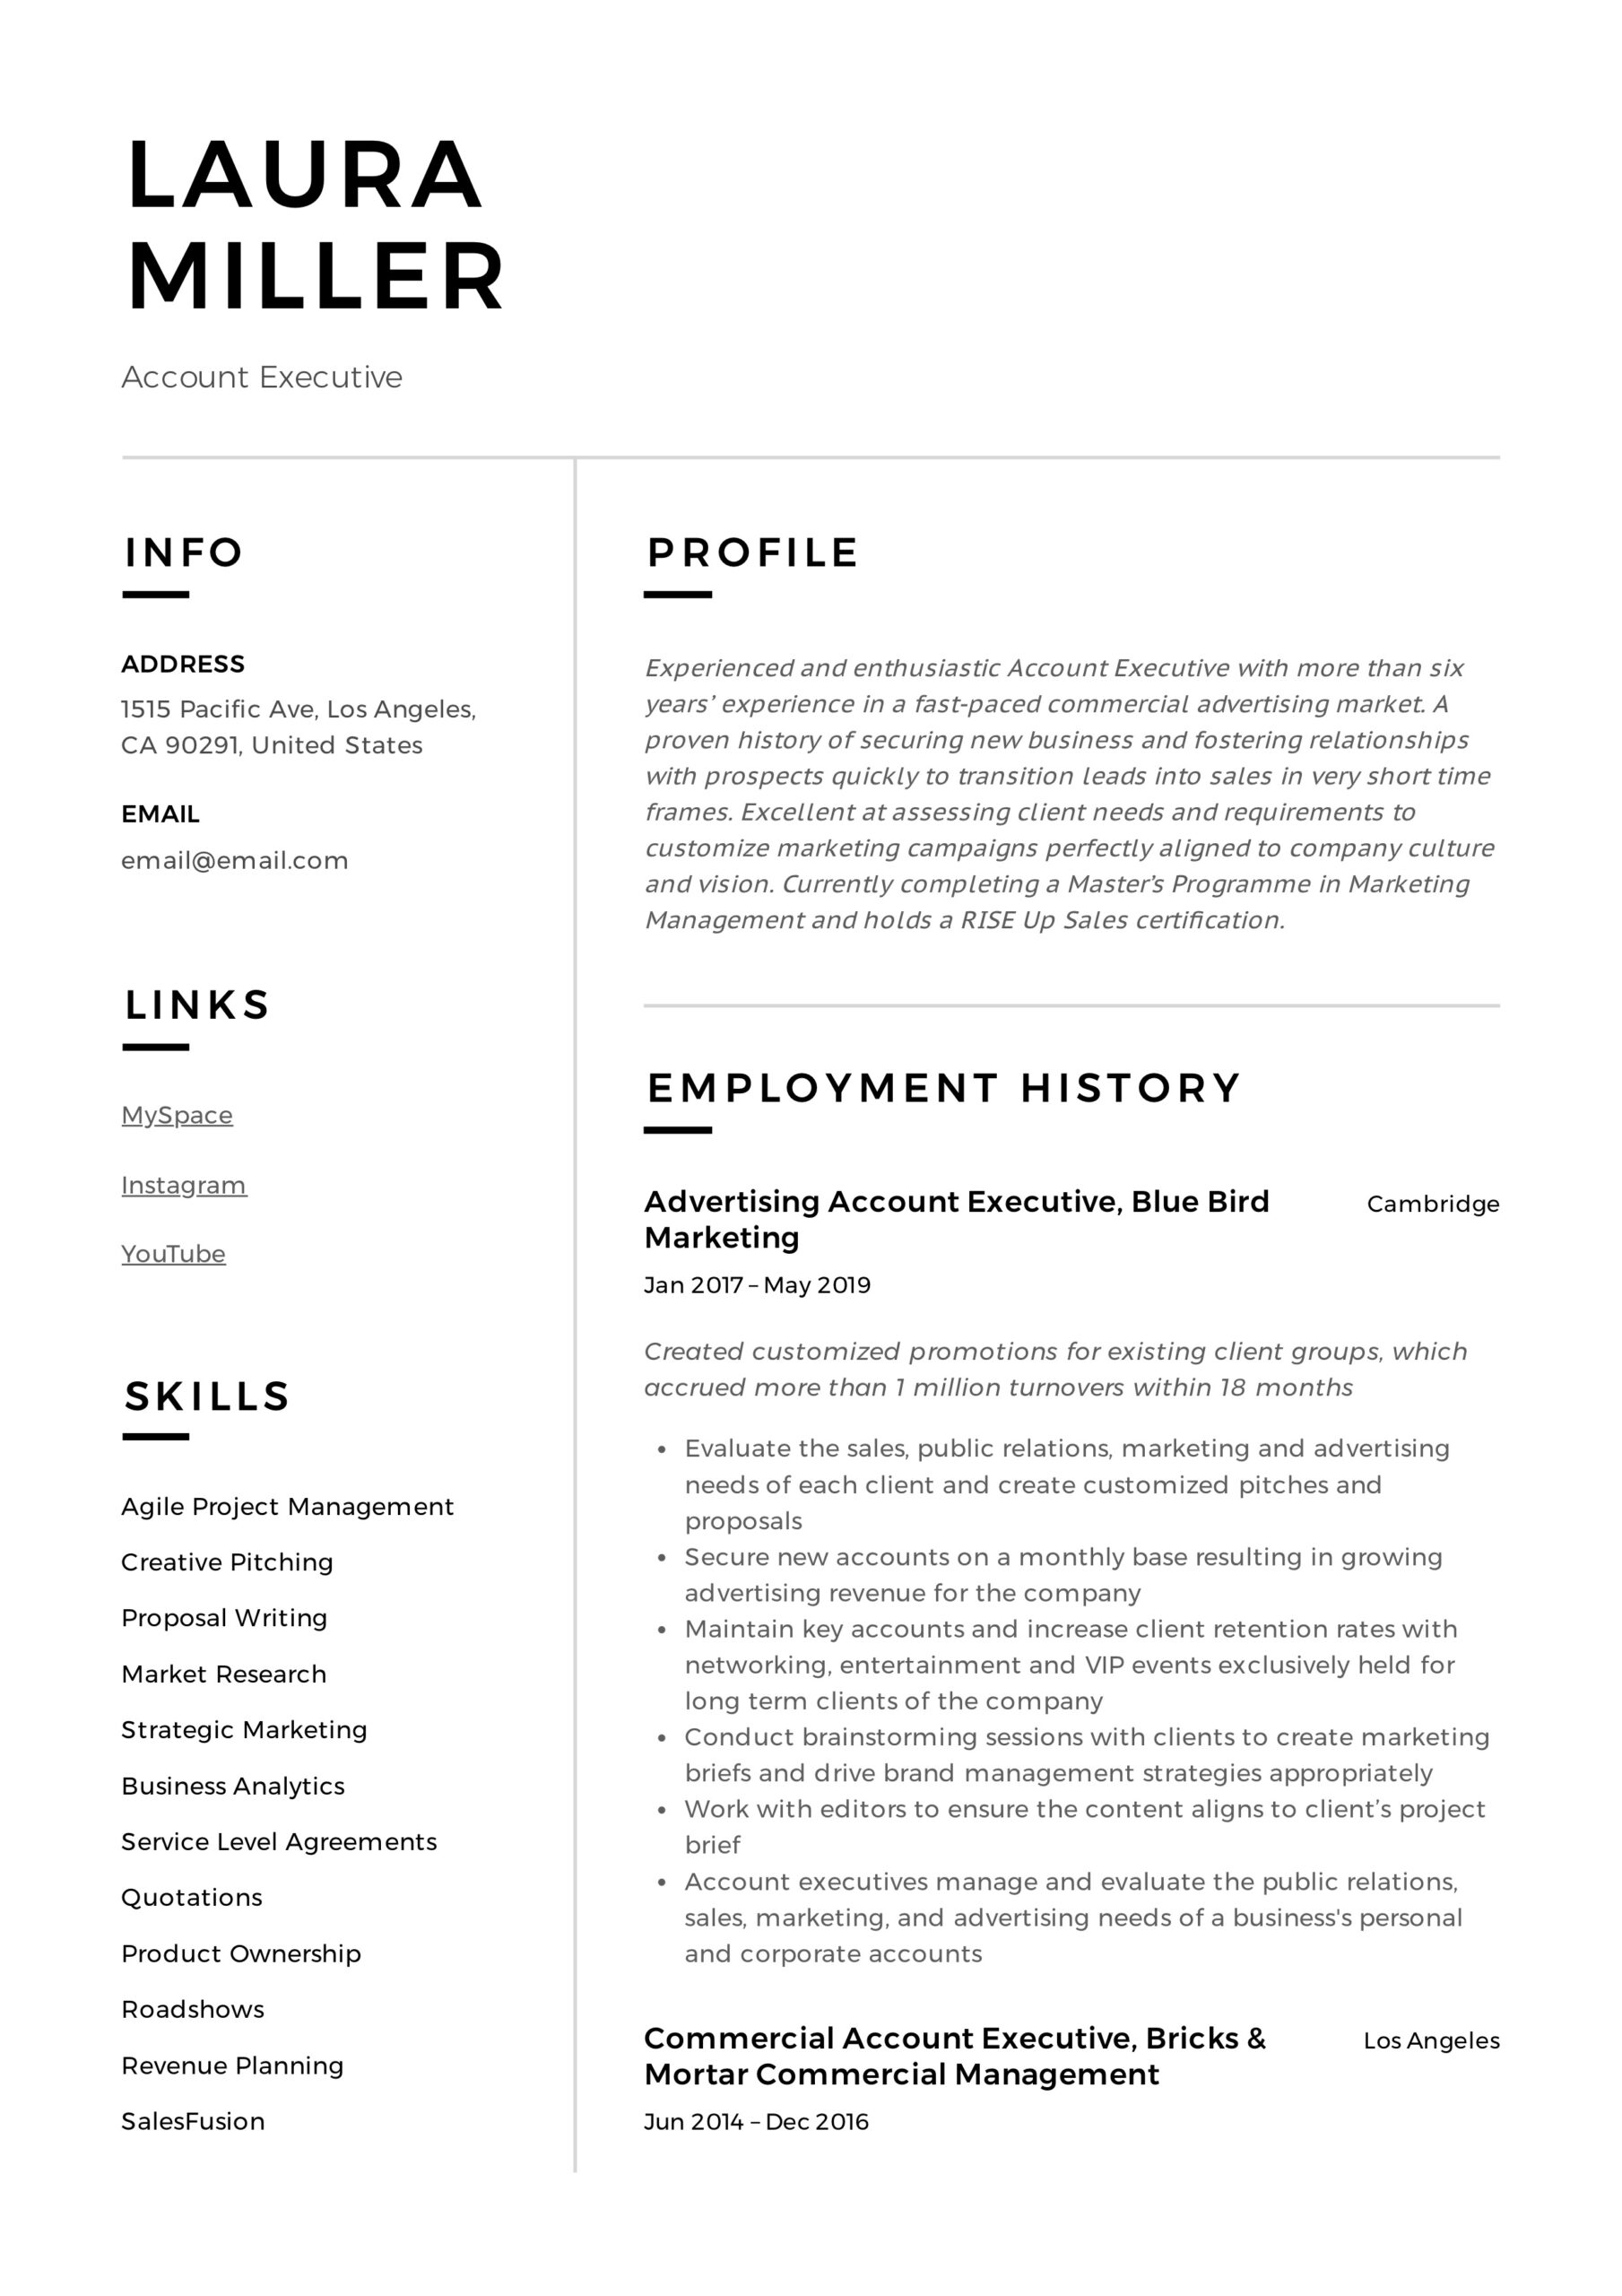 account executive resume writing guide templates pdf examples example software engineer Resume Account Executive Resume Examples